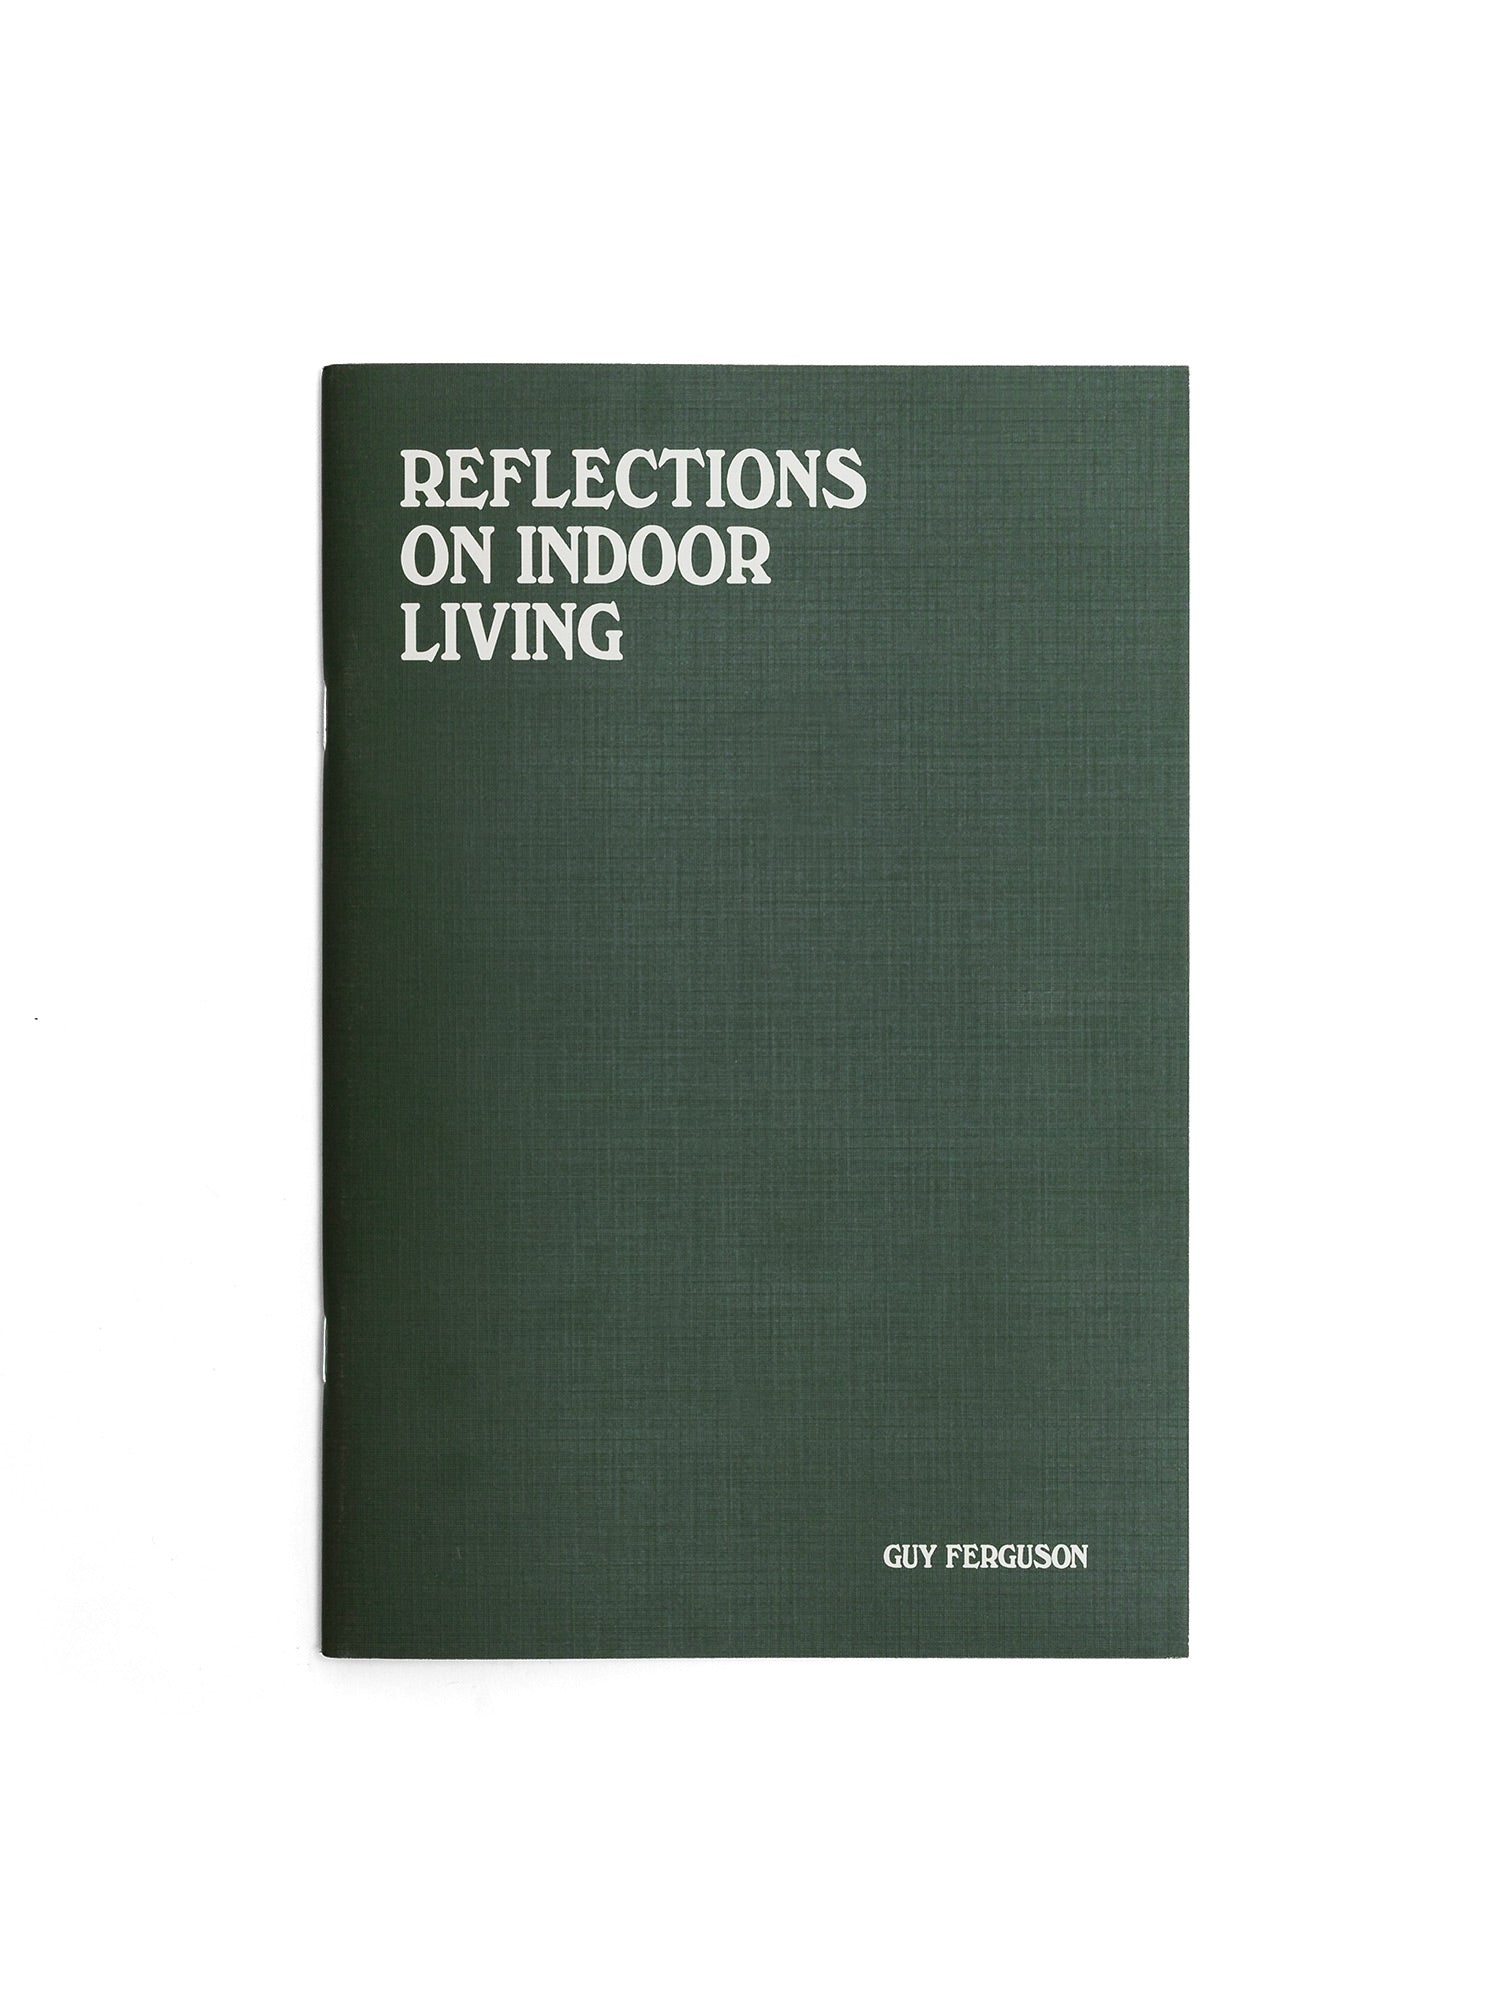 Reflections on Indoor Living